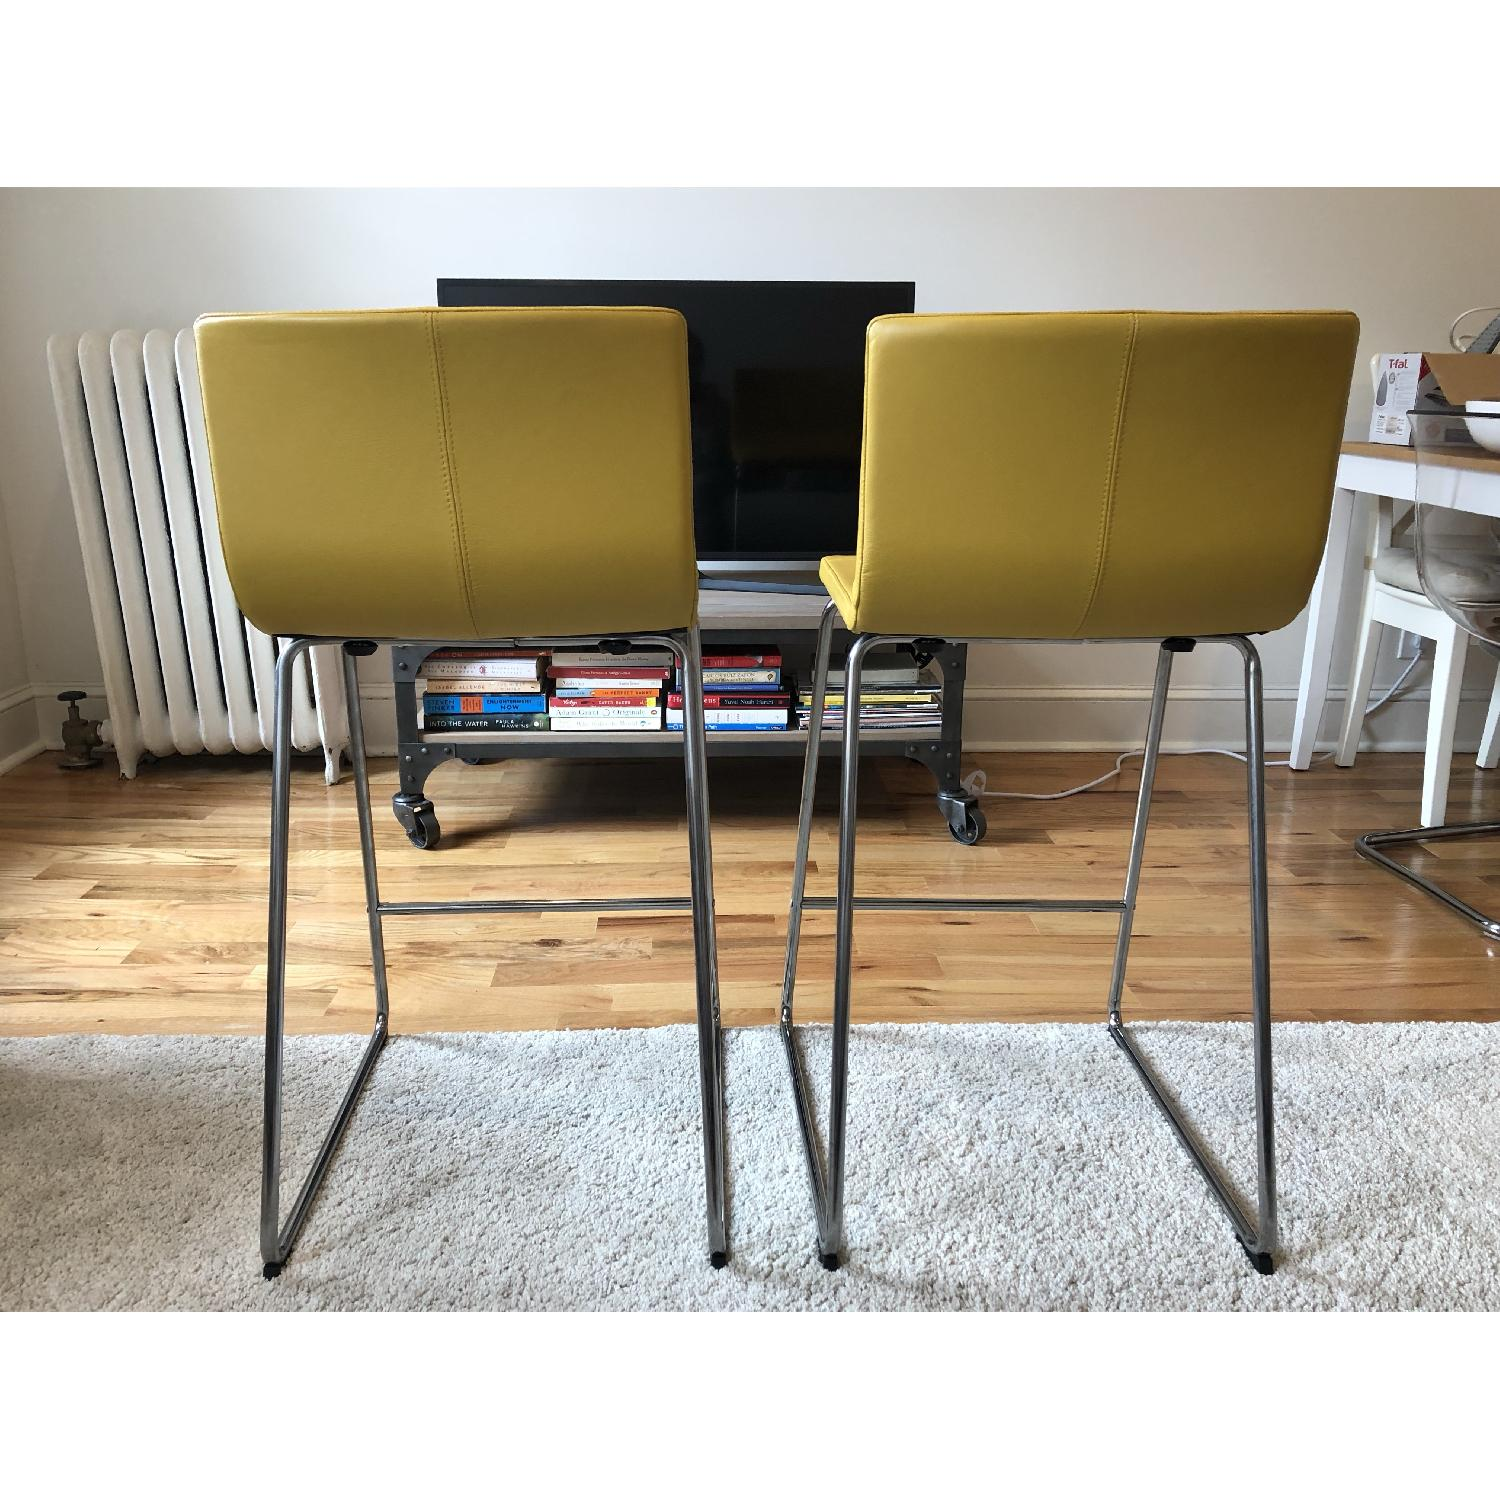 Ikea Bernhard Bar Stools w/ Backrest-4